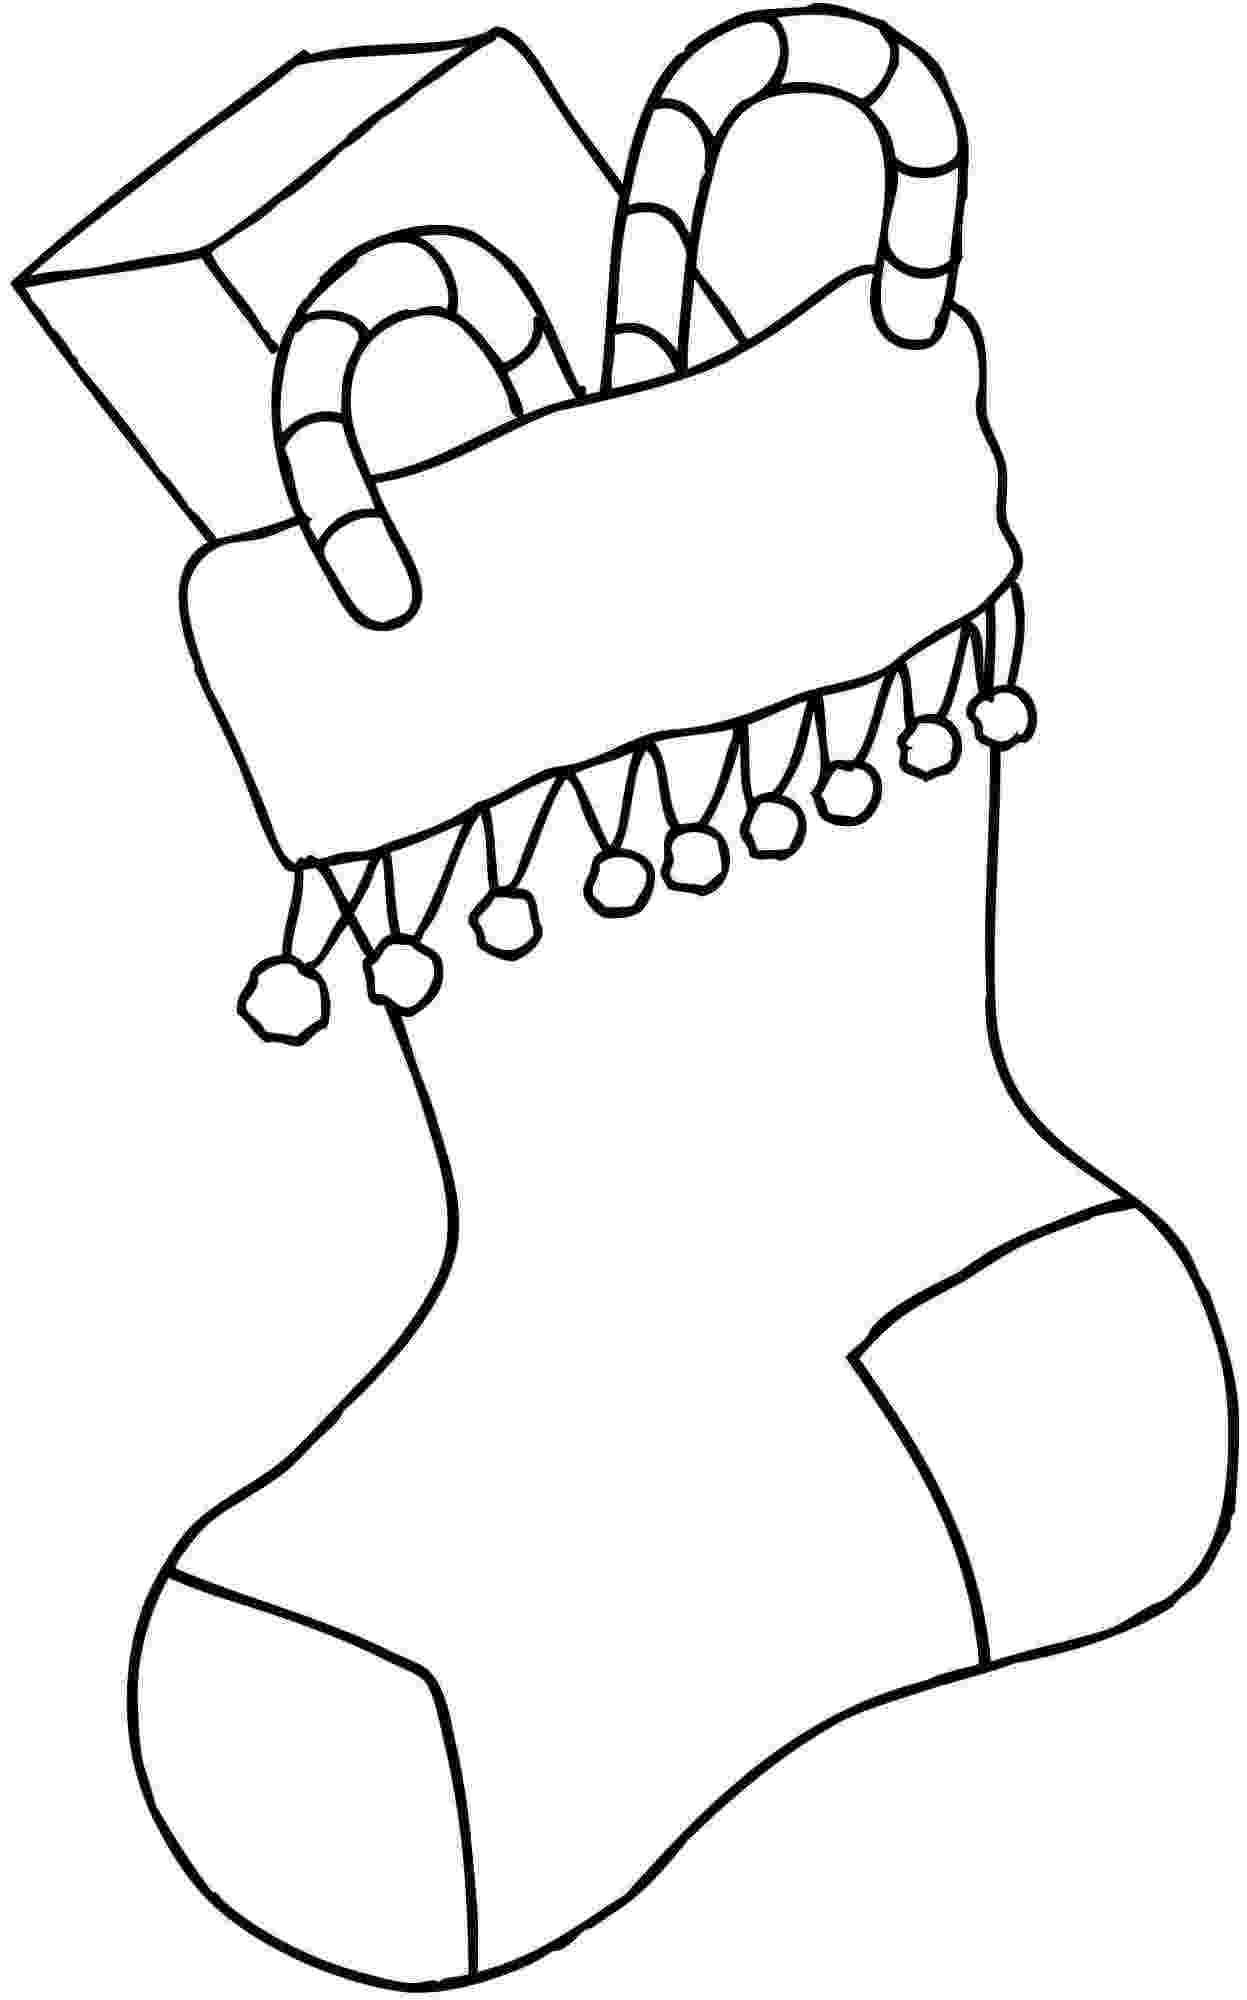 colouring pages about christmas ongarainenglish christmas coloring sheets pages christmas about colouring